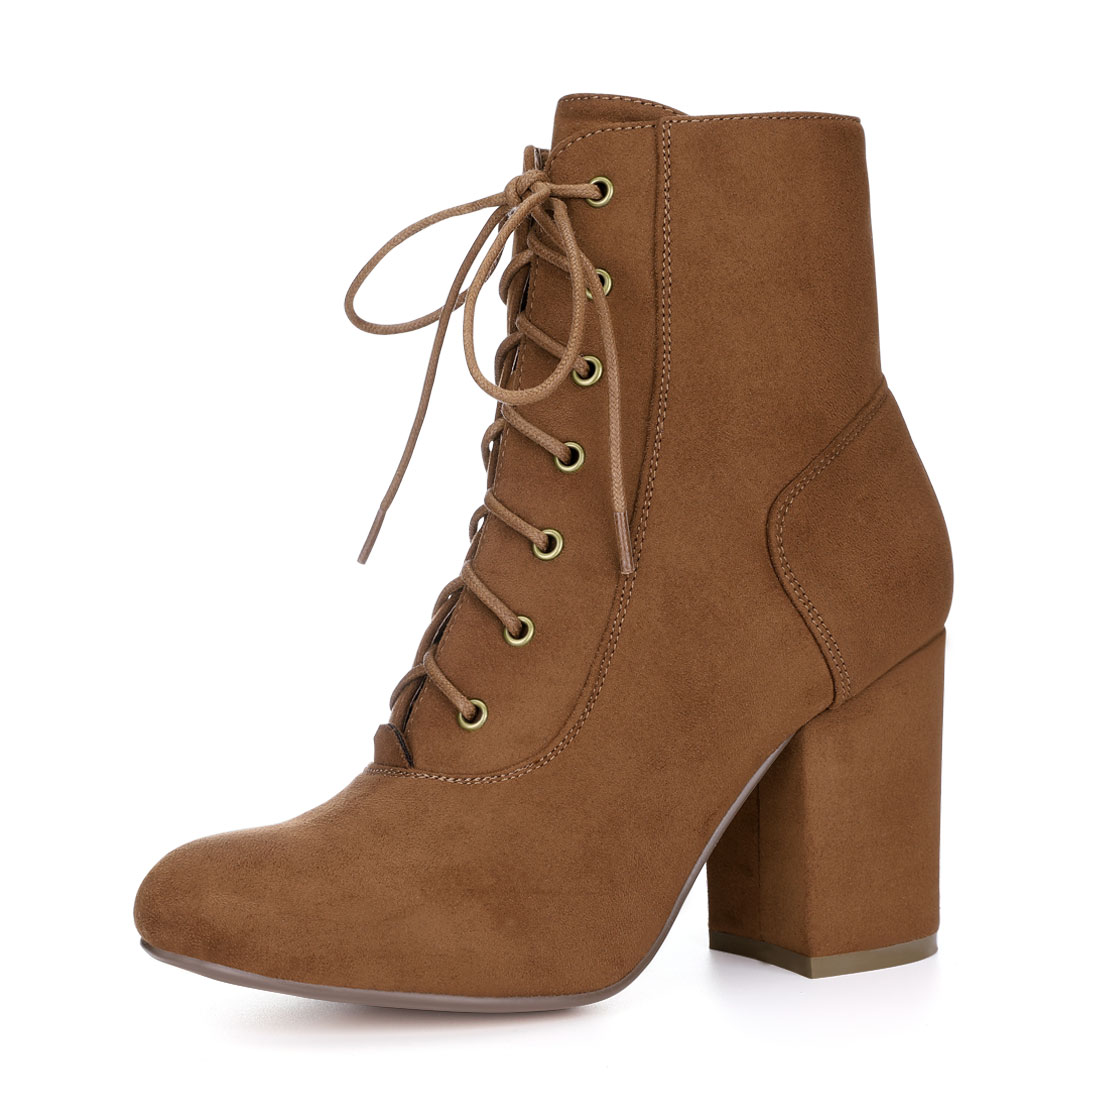 Allegra K Women Round Toe Chunky High Heel Lace Up Booties Brown US 8